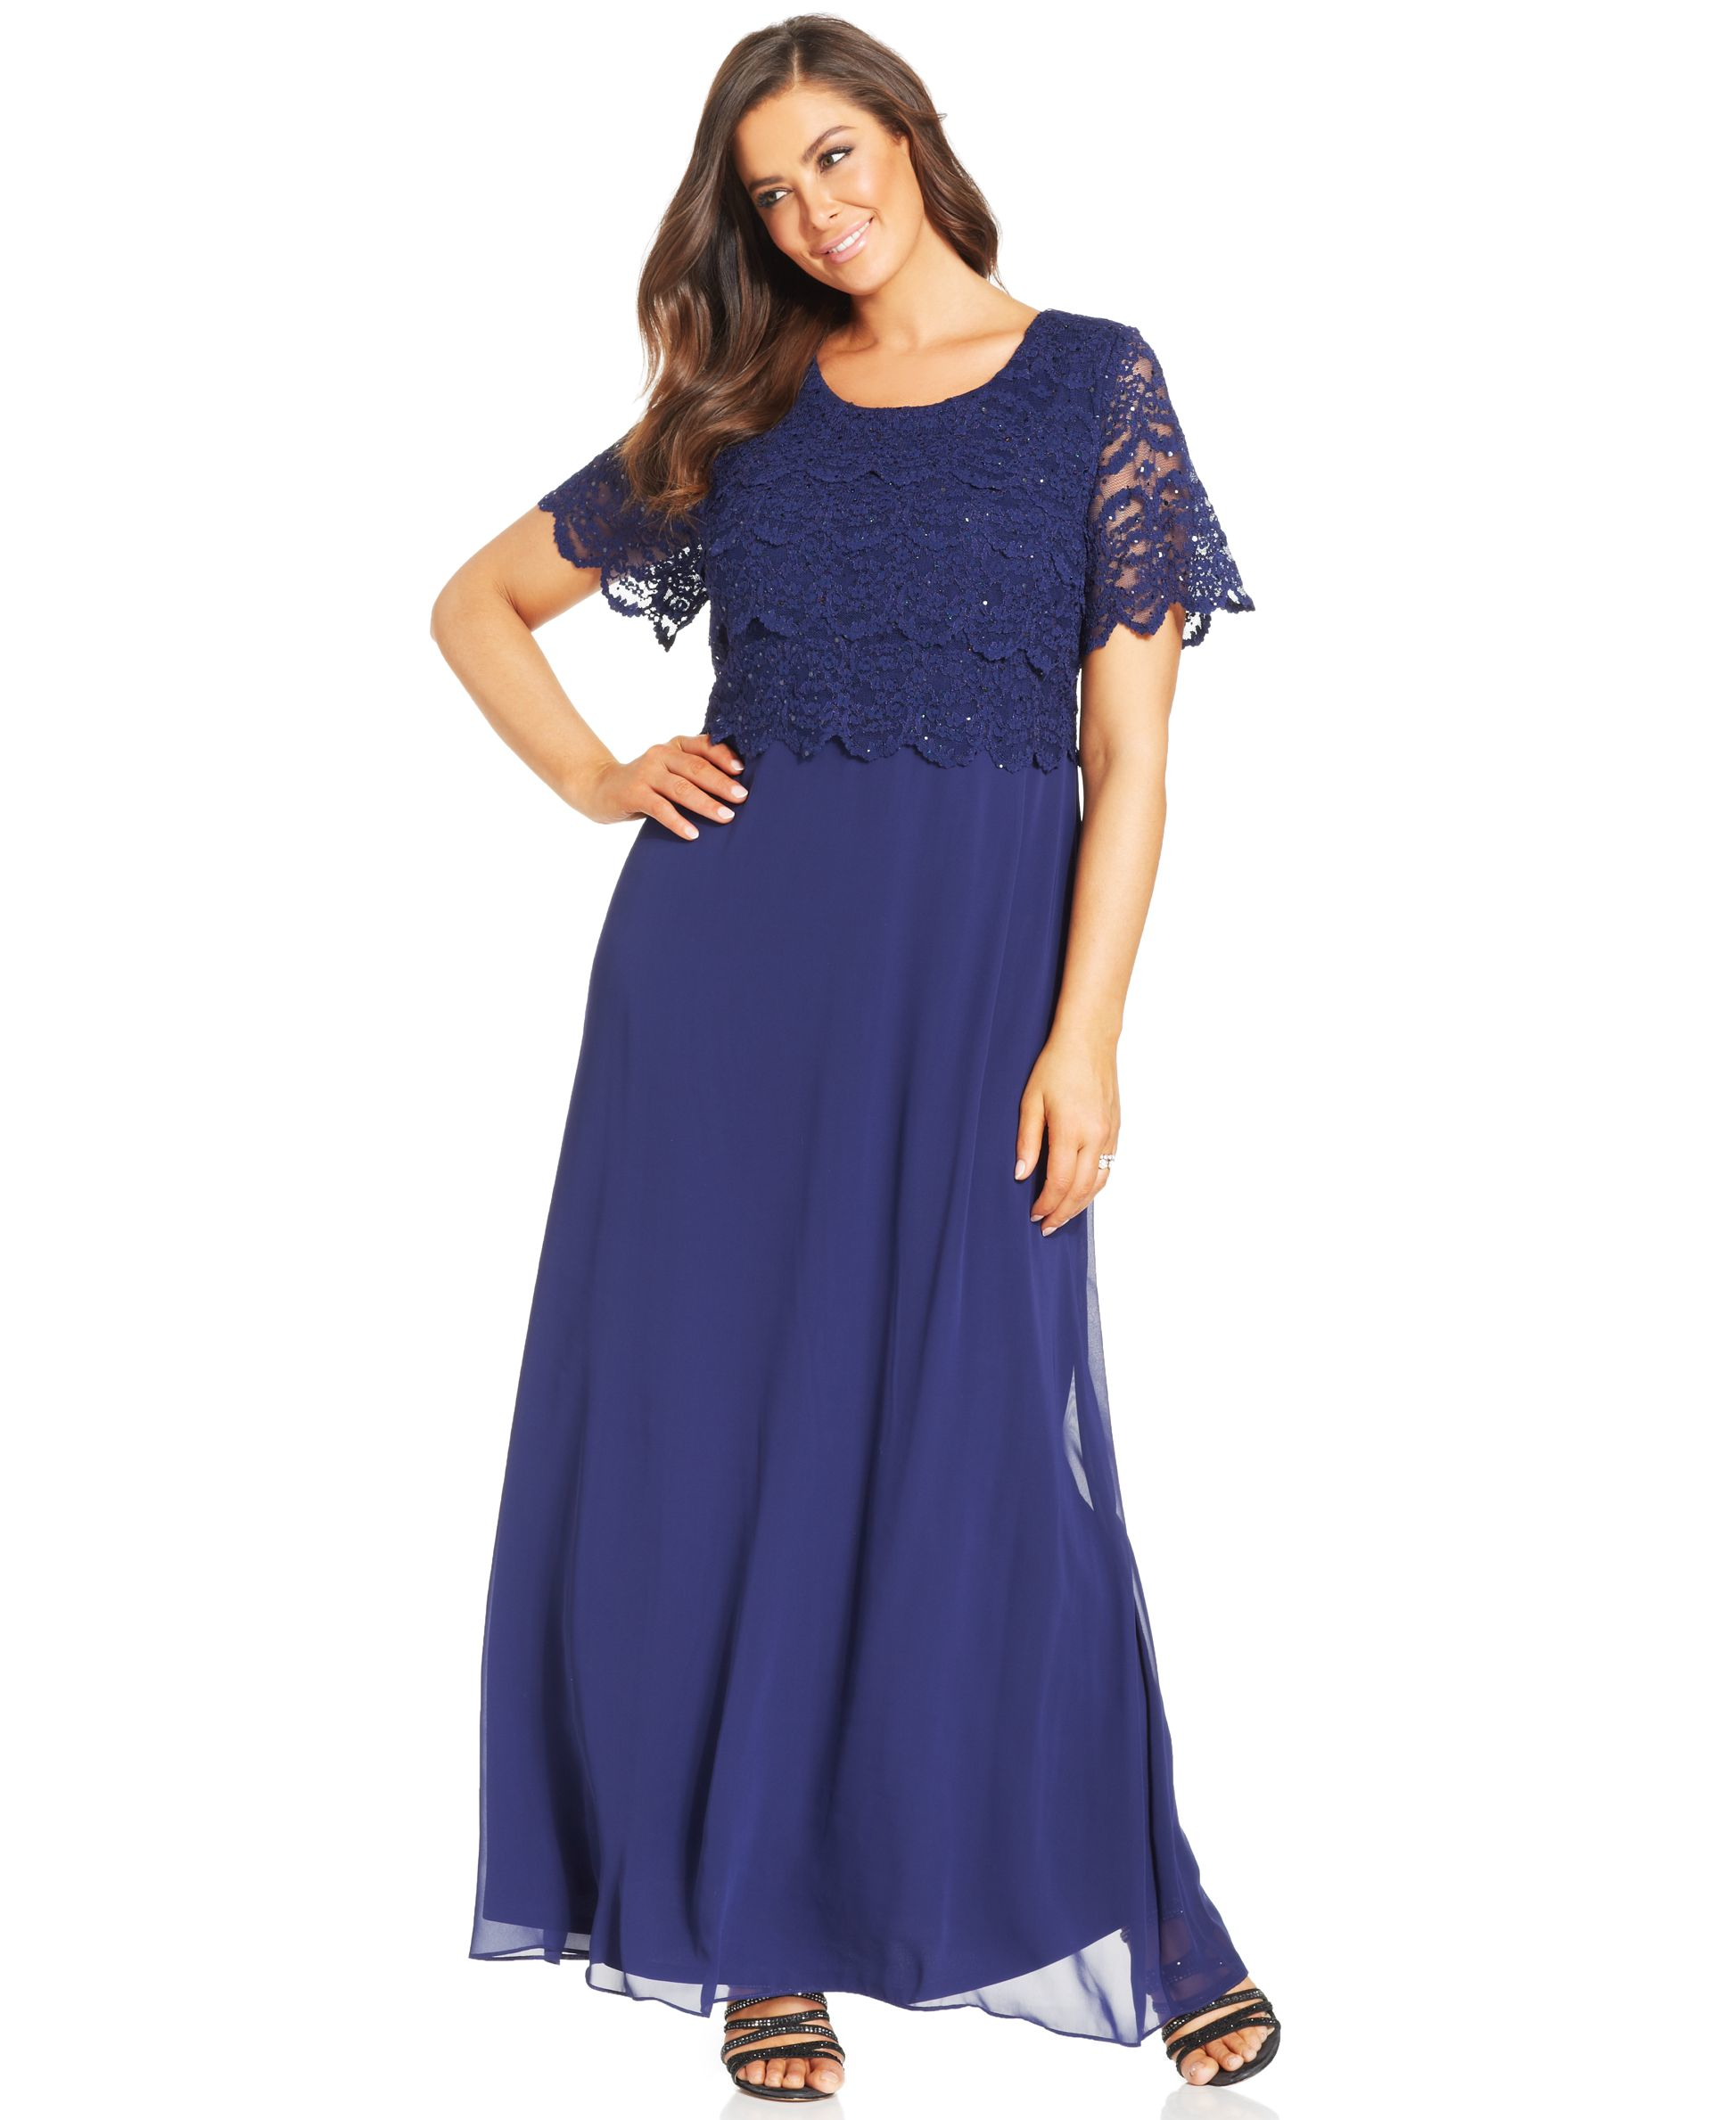 Results for Macys Plus Size Prom Dresses